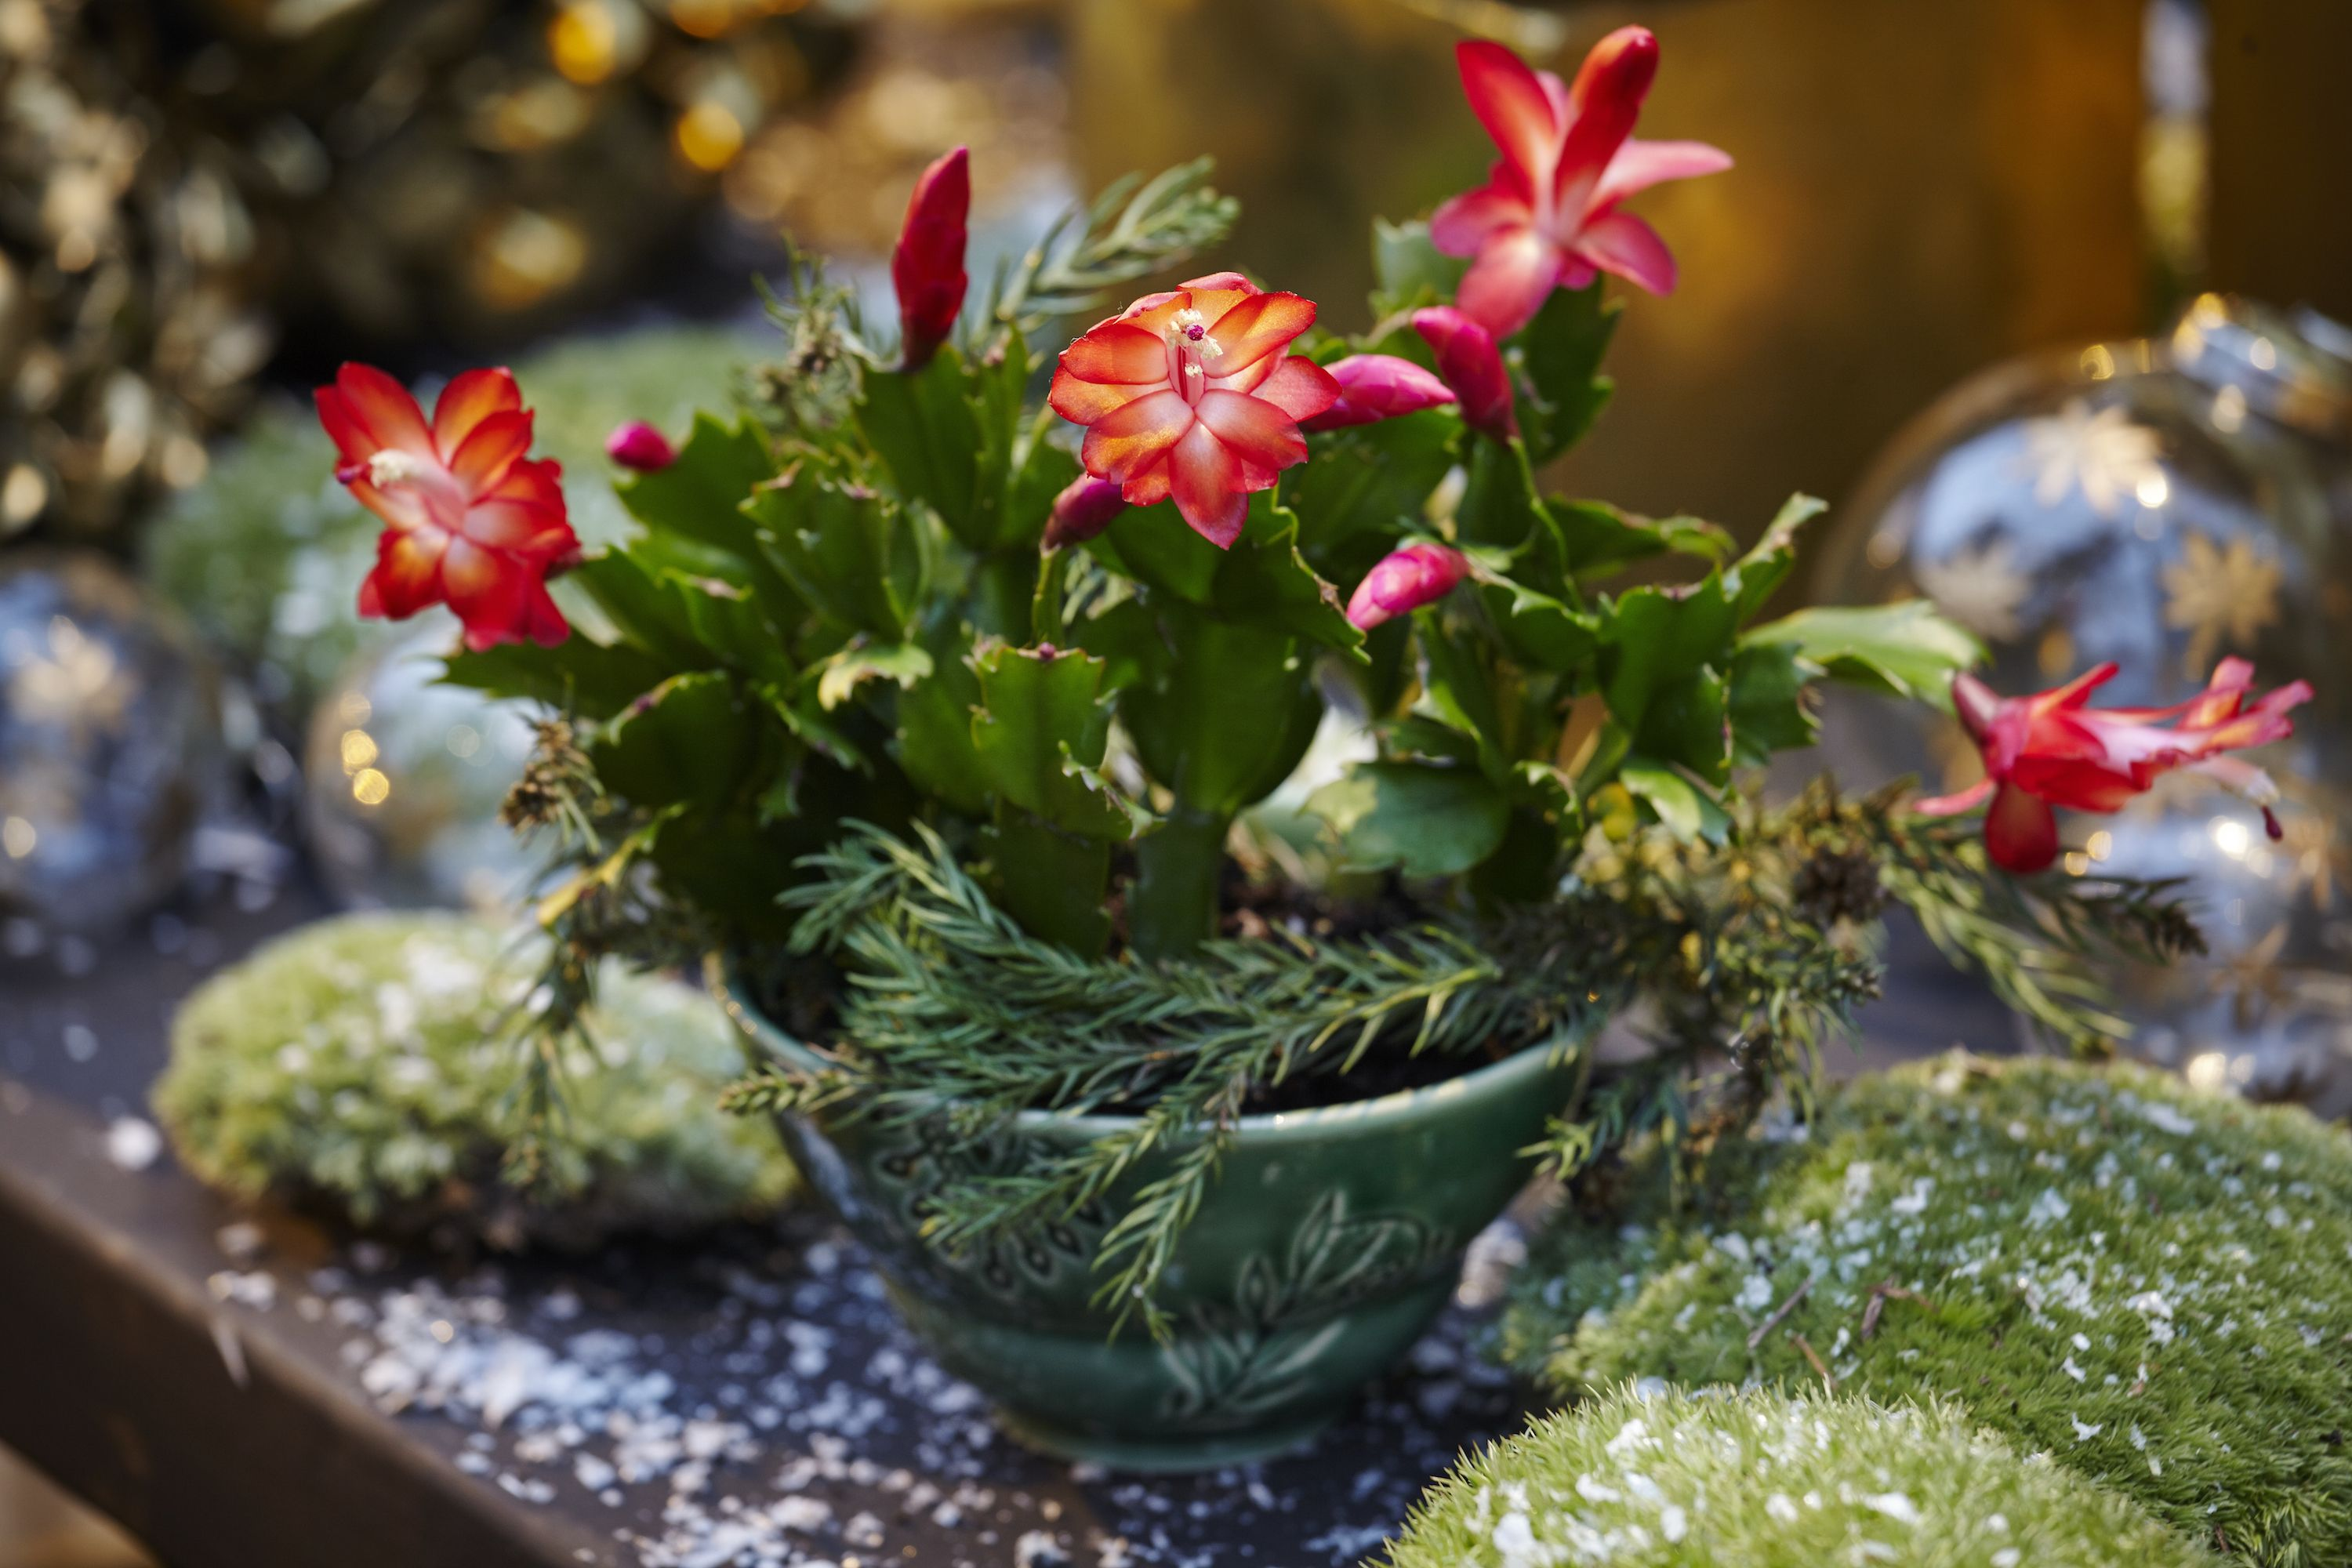 How To Care For Christmas Cactus.How To Care For Christmas Cactus Indoors Christmas Cactus